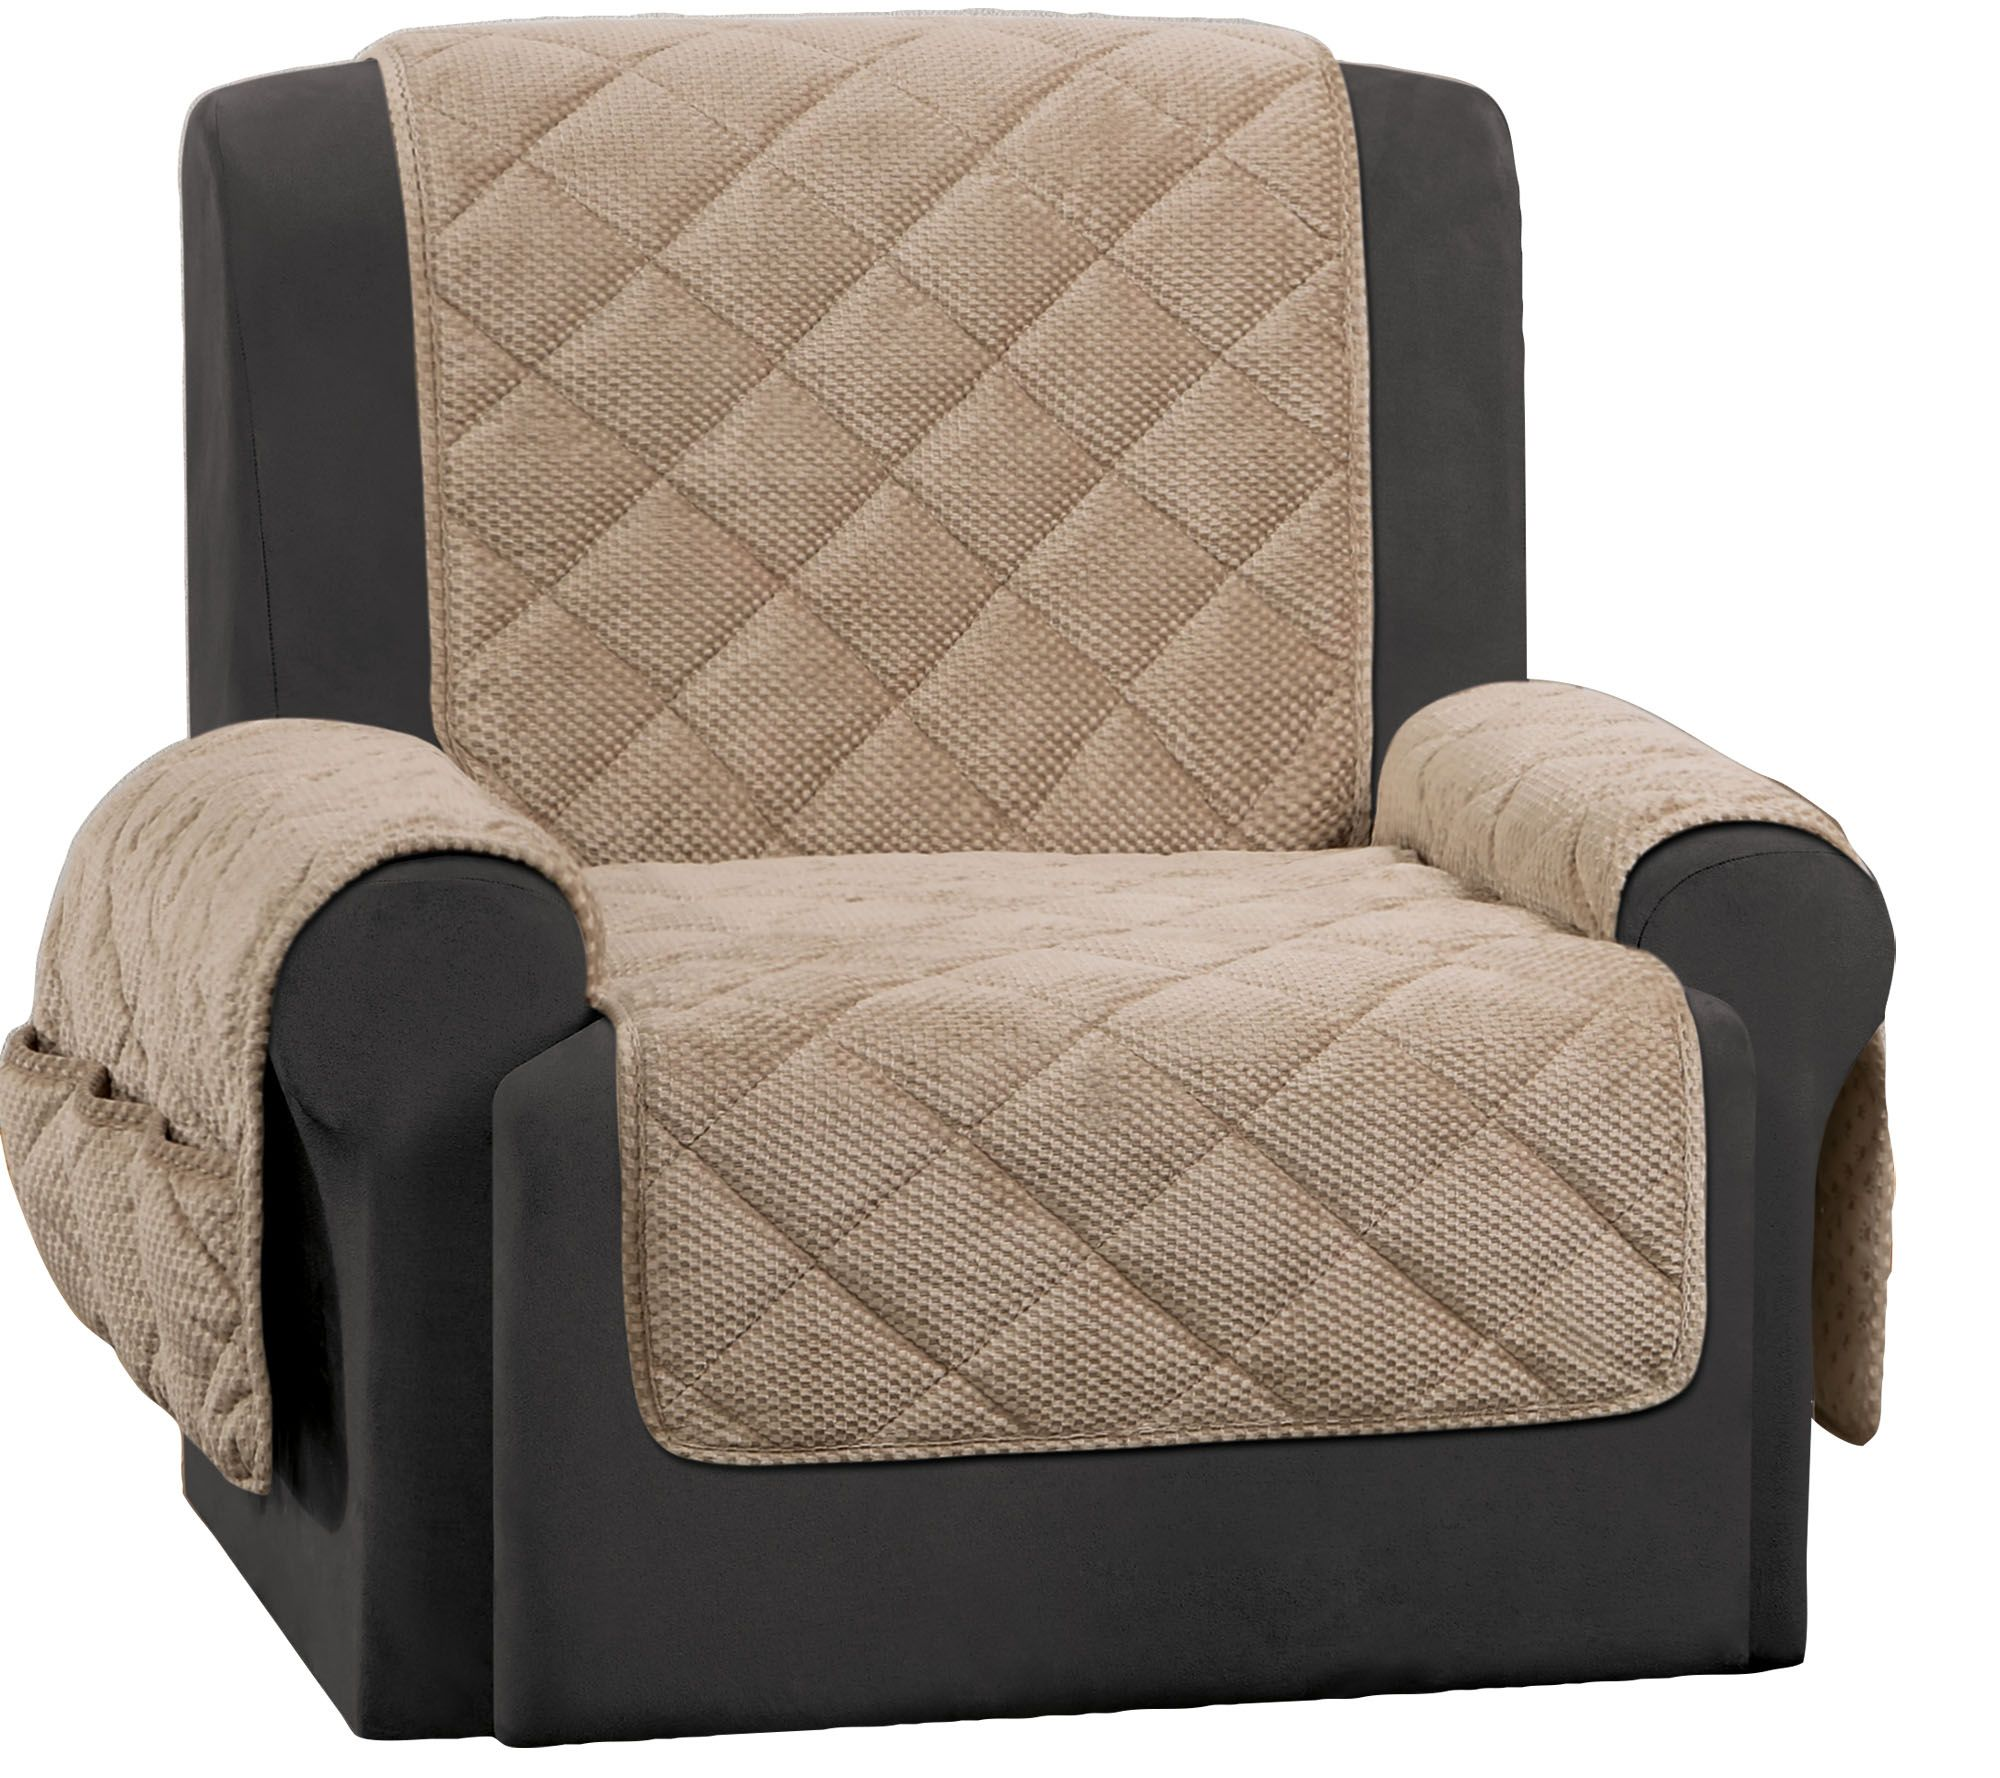 Sure Fit Recliner Furniture Cover With Textured Pique Fabric Page 1